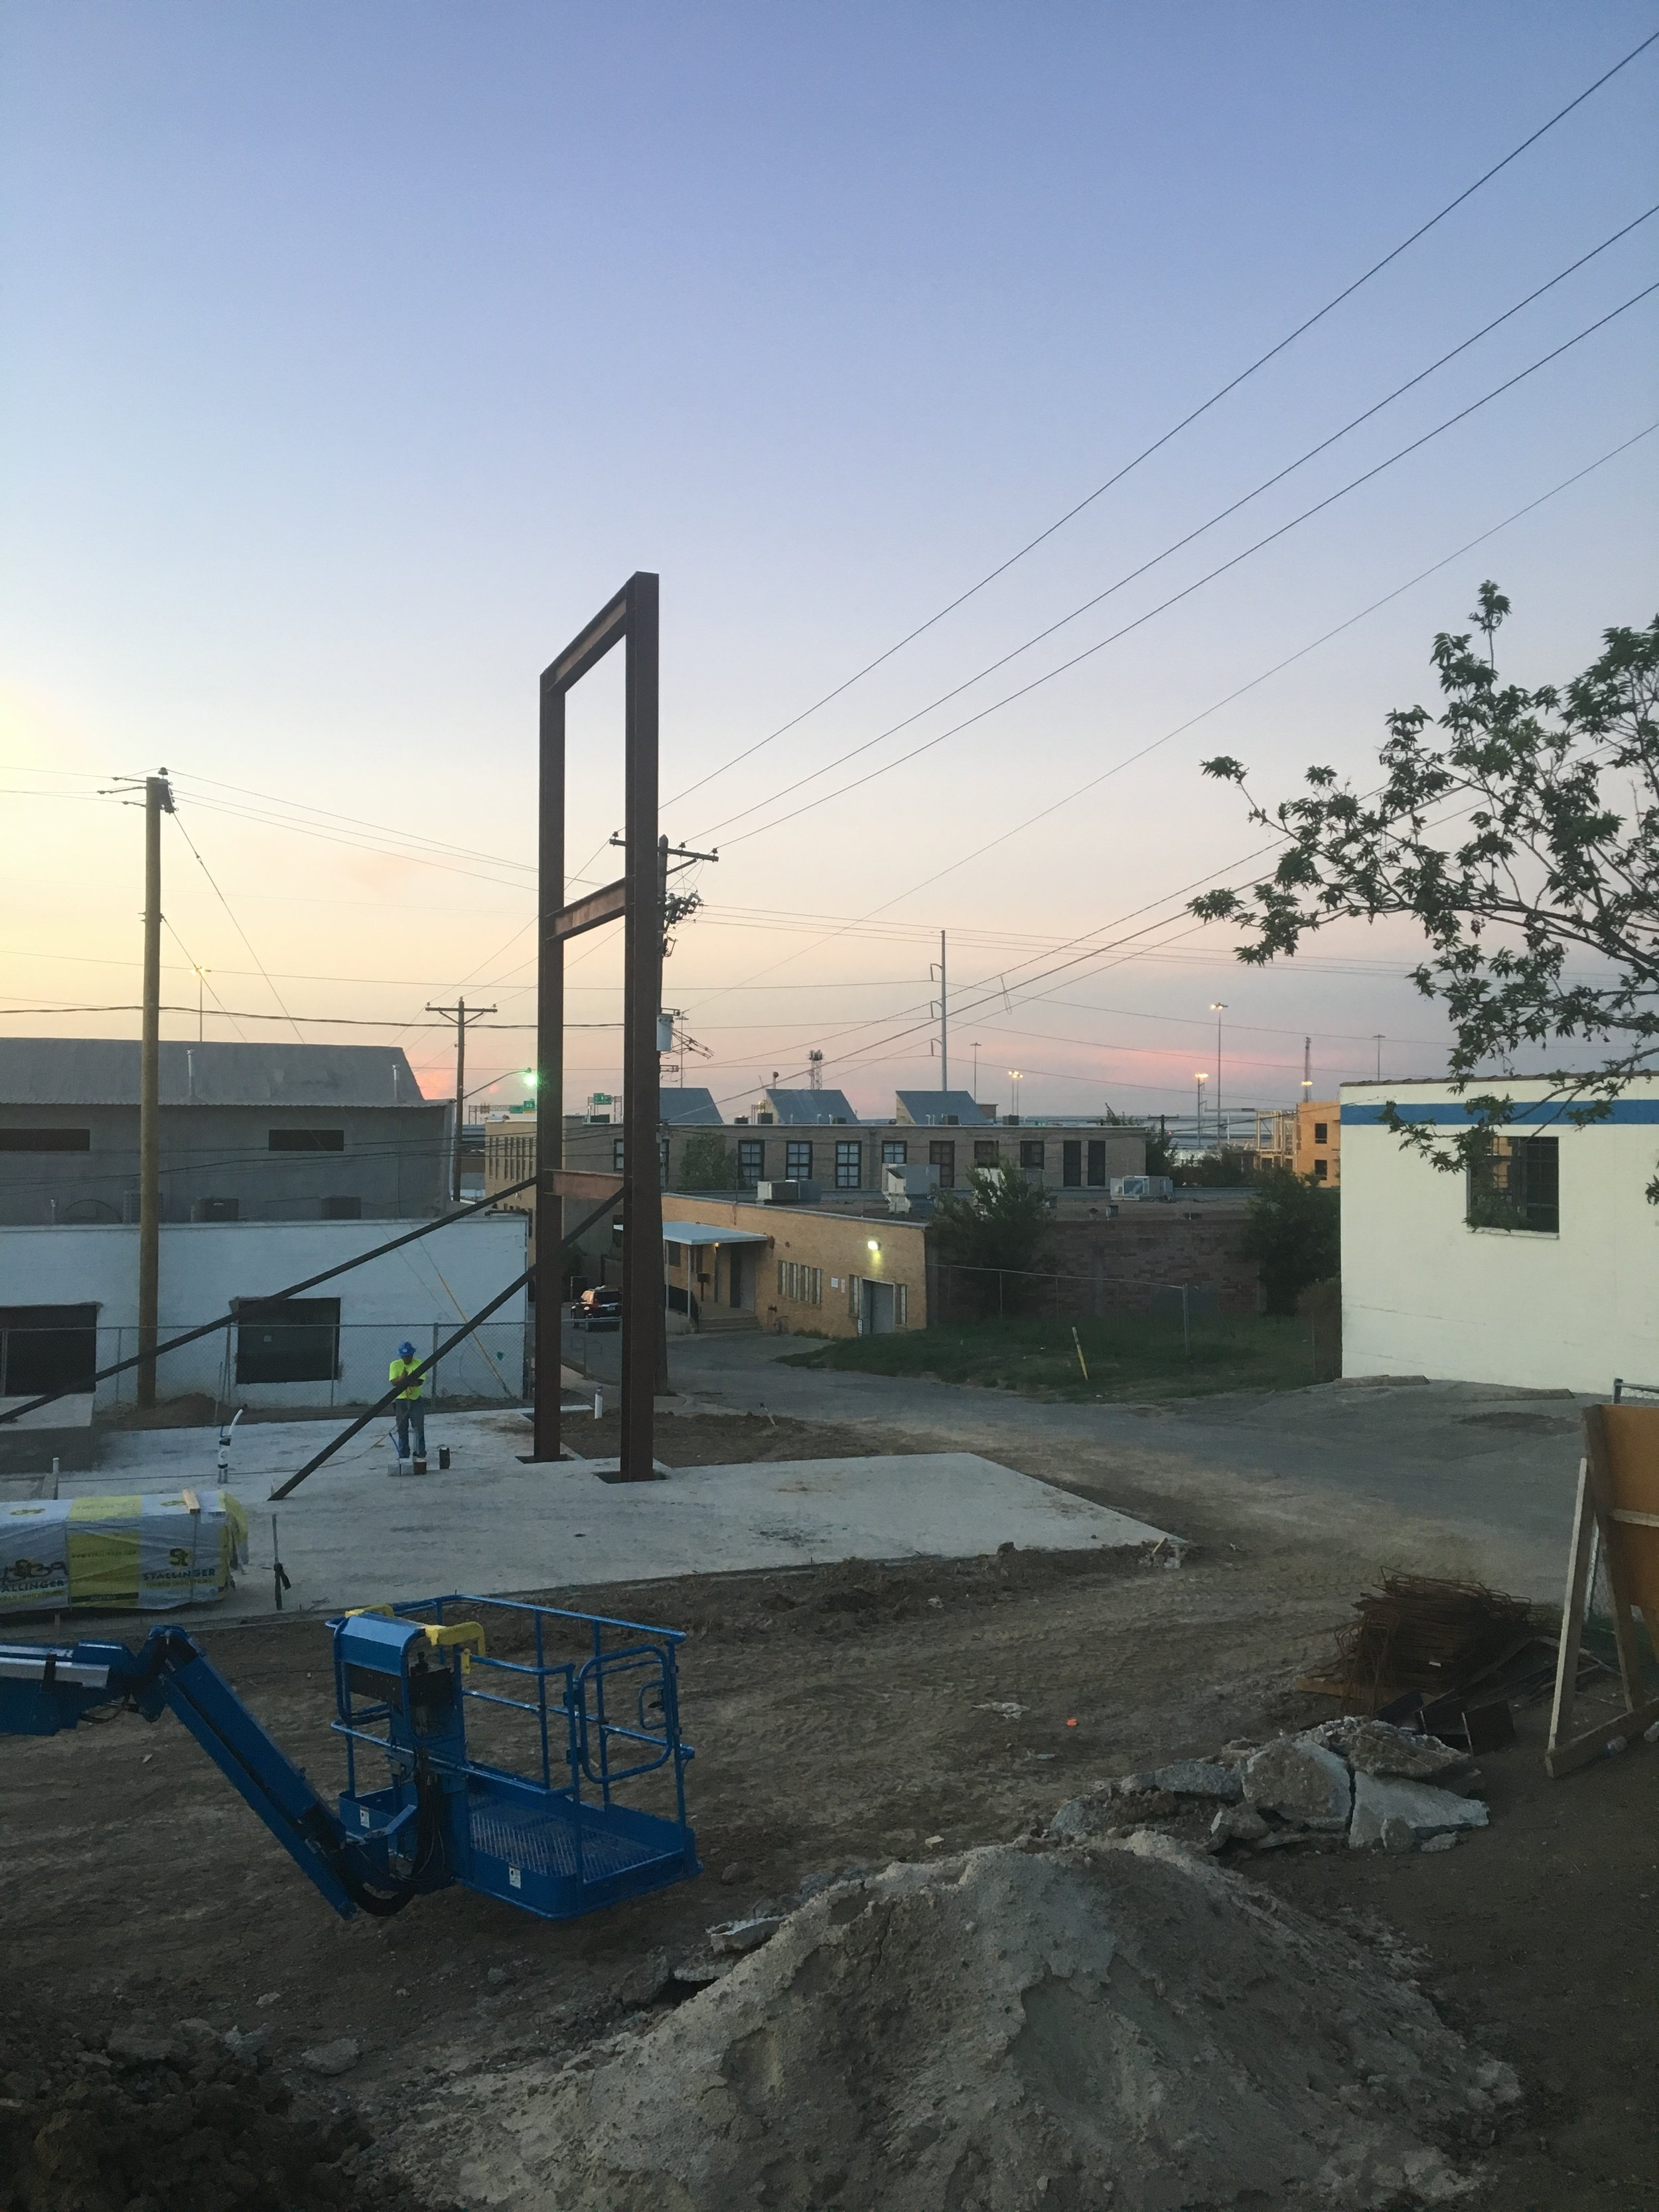 Looking northeast from the adjacent property over the construction site